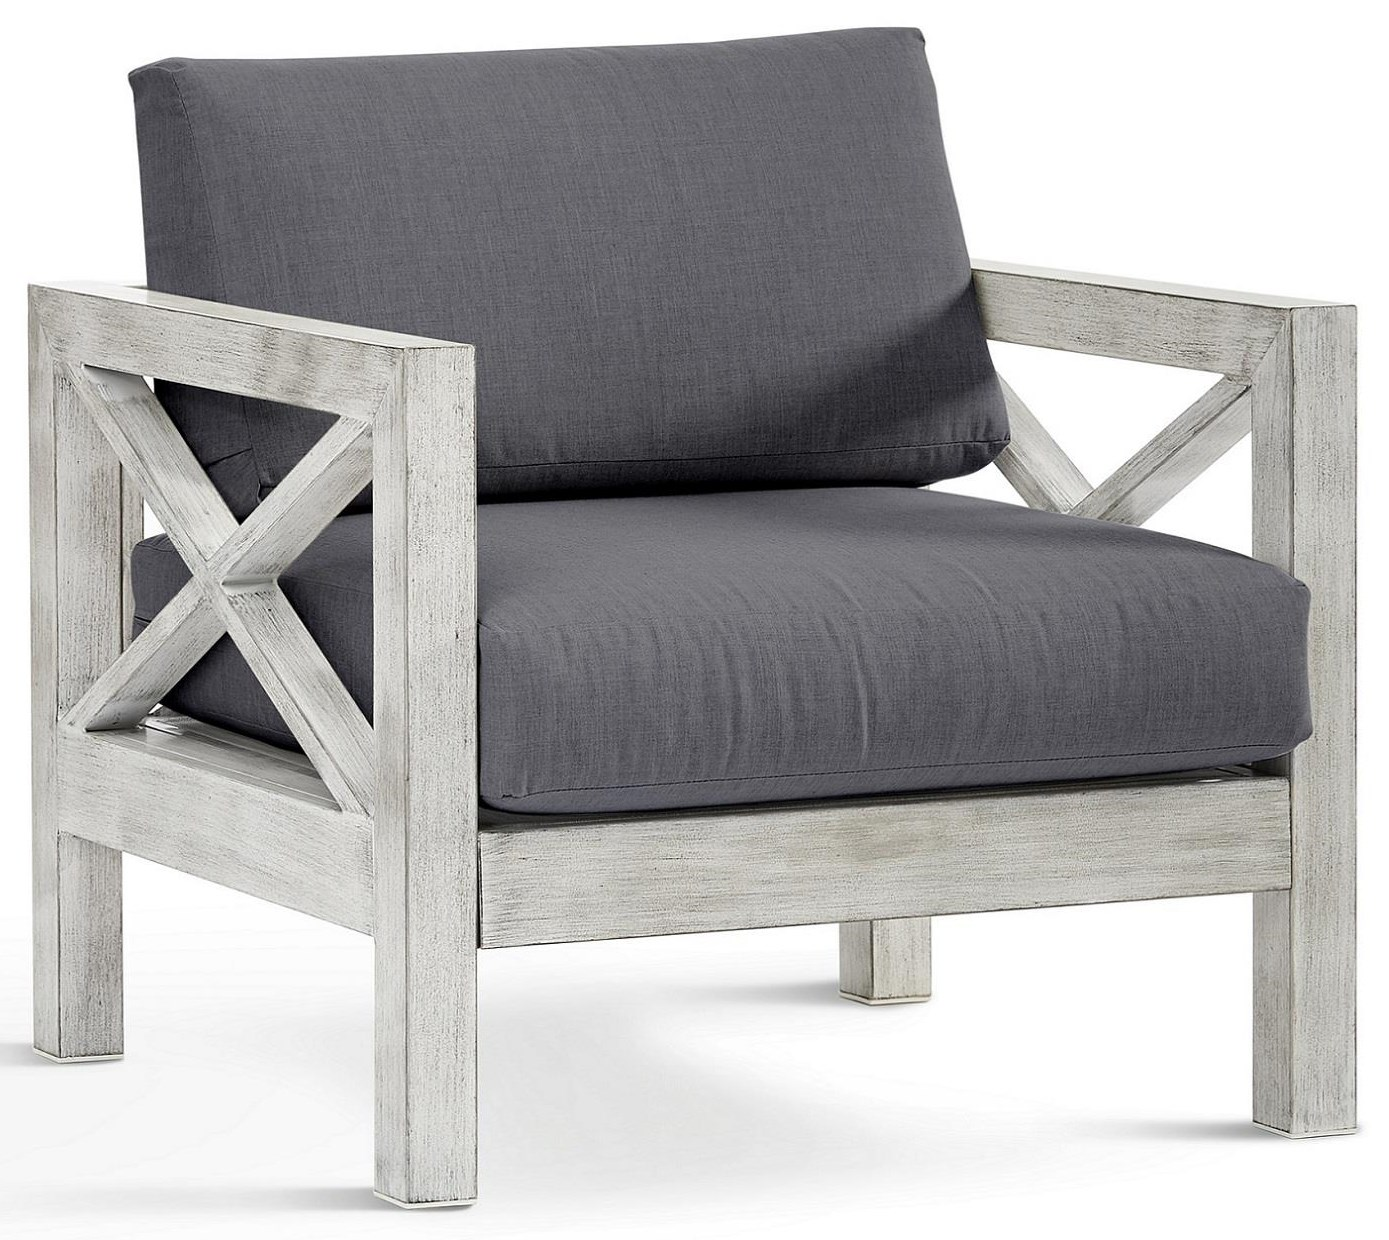 Farlowe Chair with Luxterior Cushion by South Sea Rattan & Wicker at Johnny Janosik